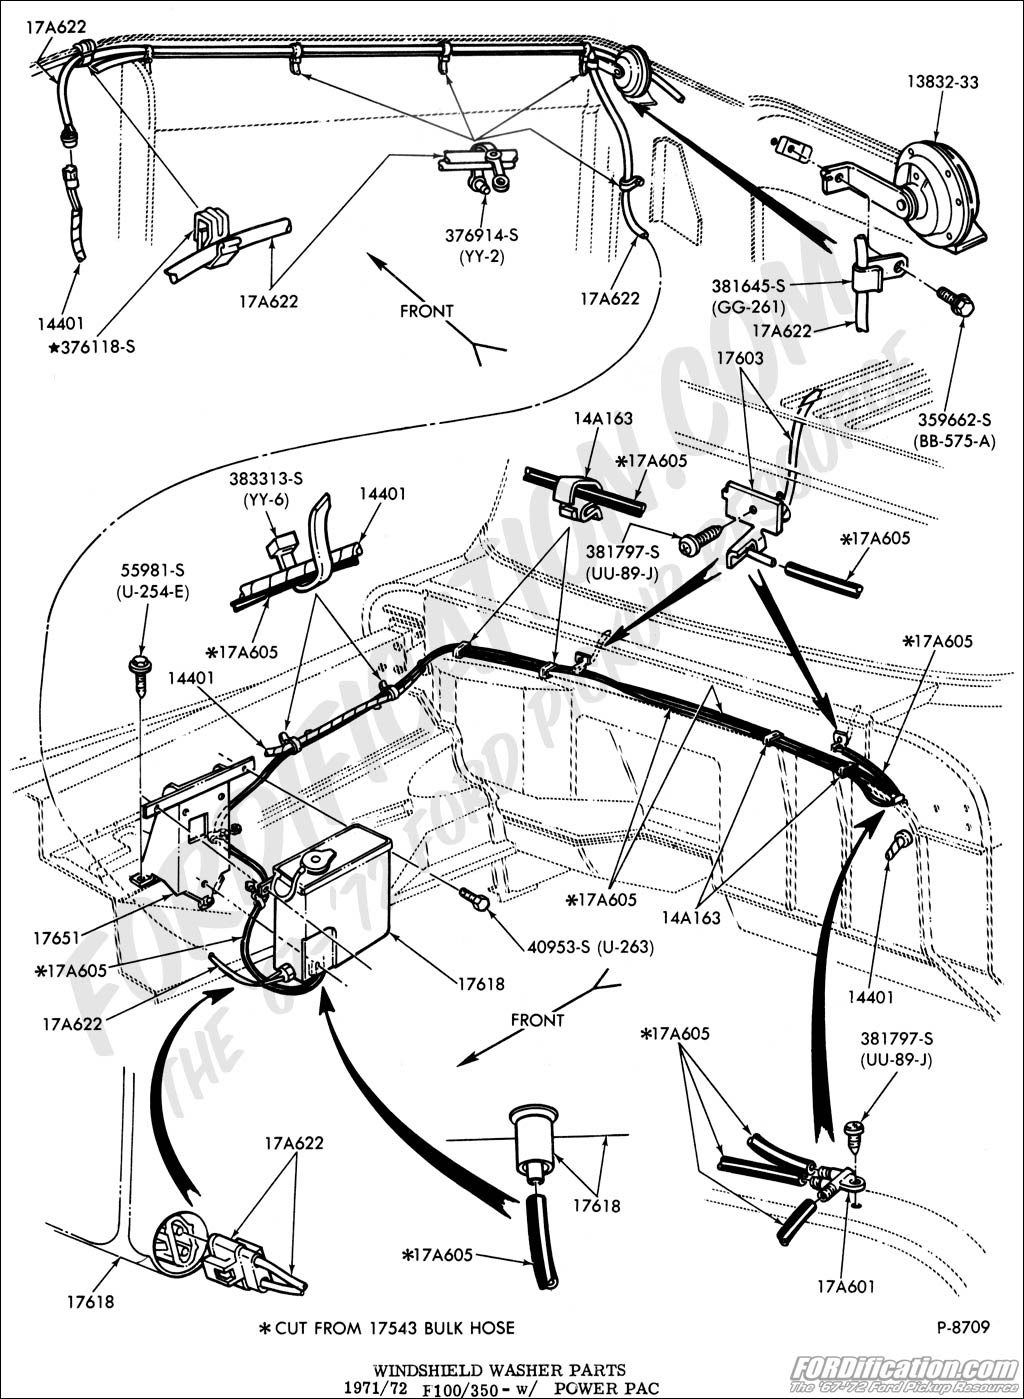 2000 Ford F150 Brake Line Diagram - Wiring Diagram Source